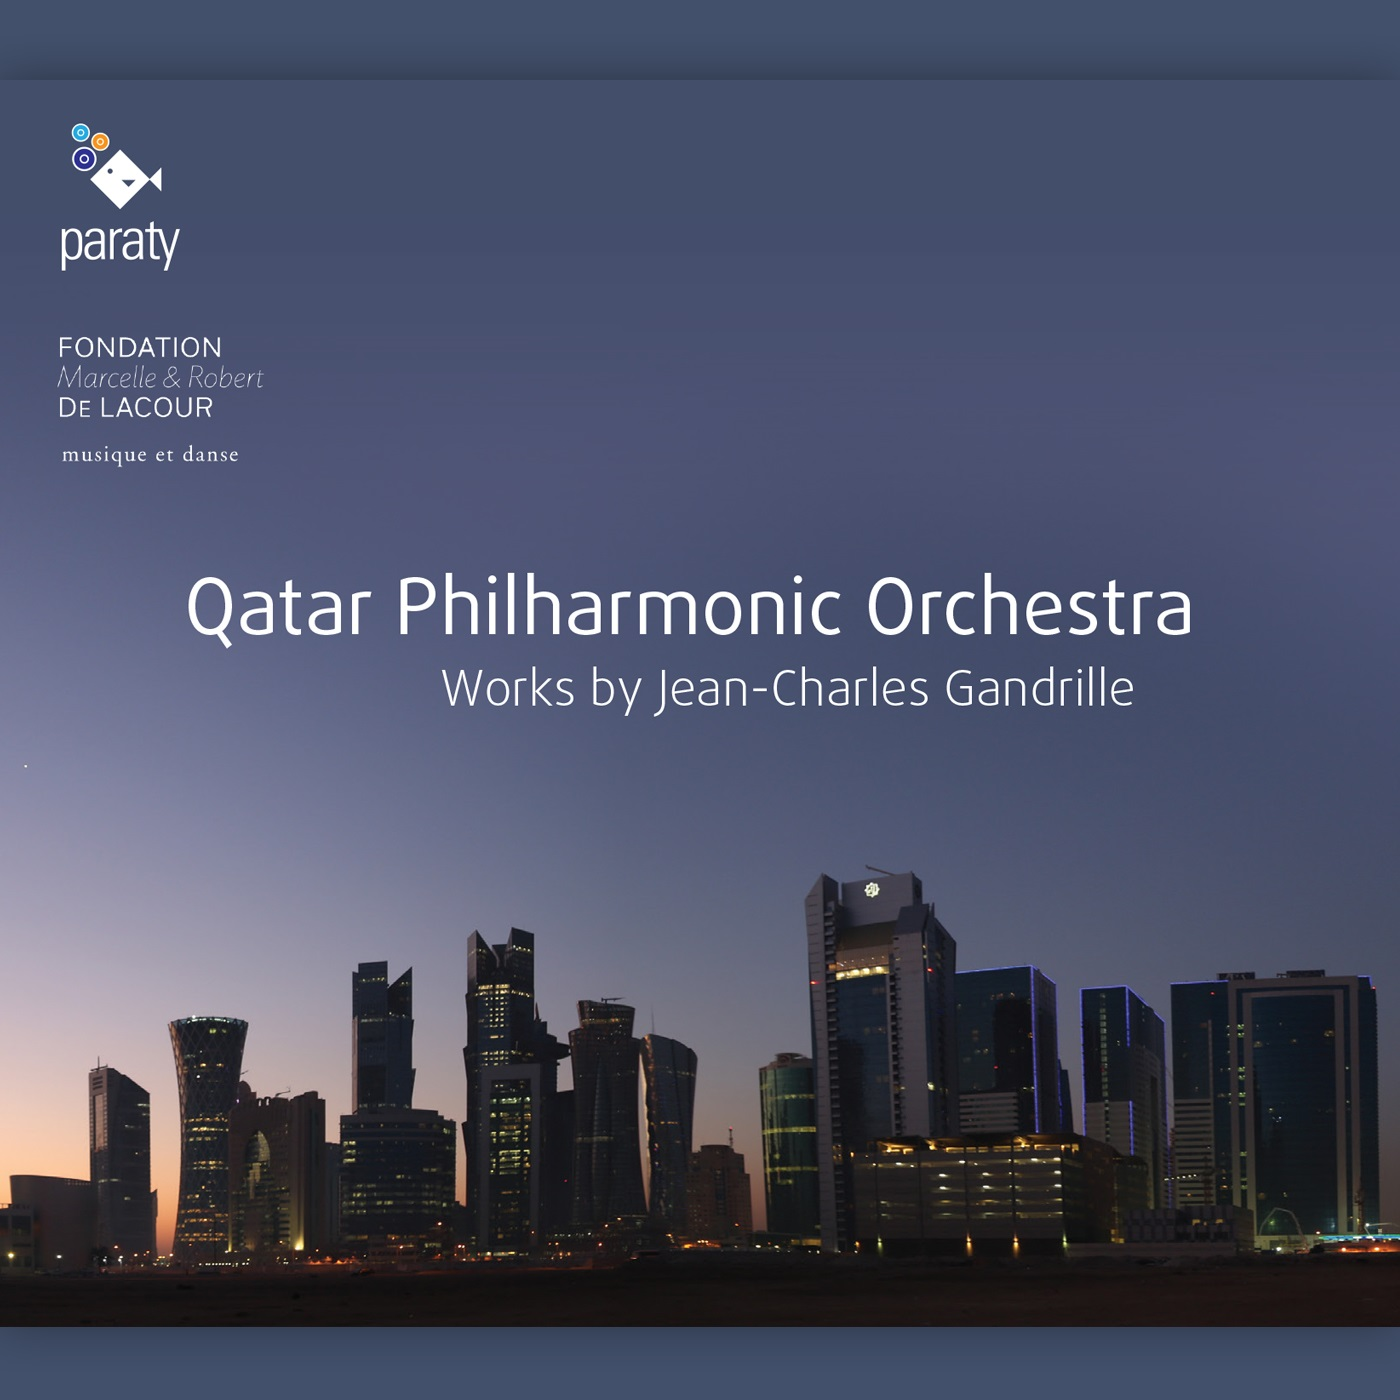 Qatar Philarmonic Orchestra, Works by Jean-Charles Gandrille